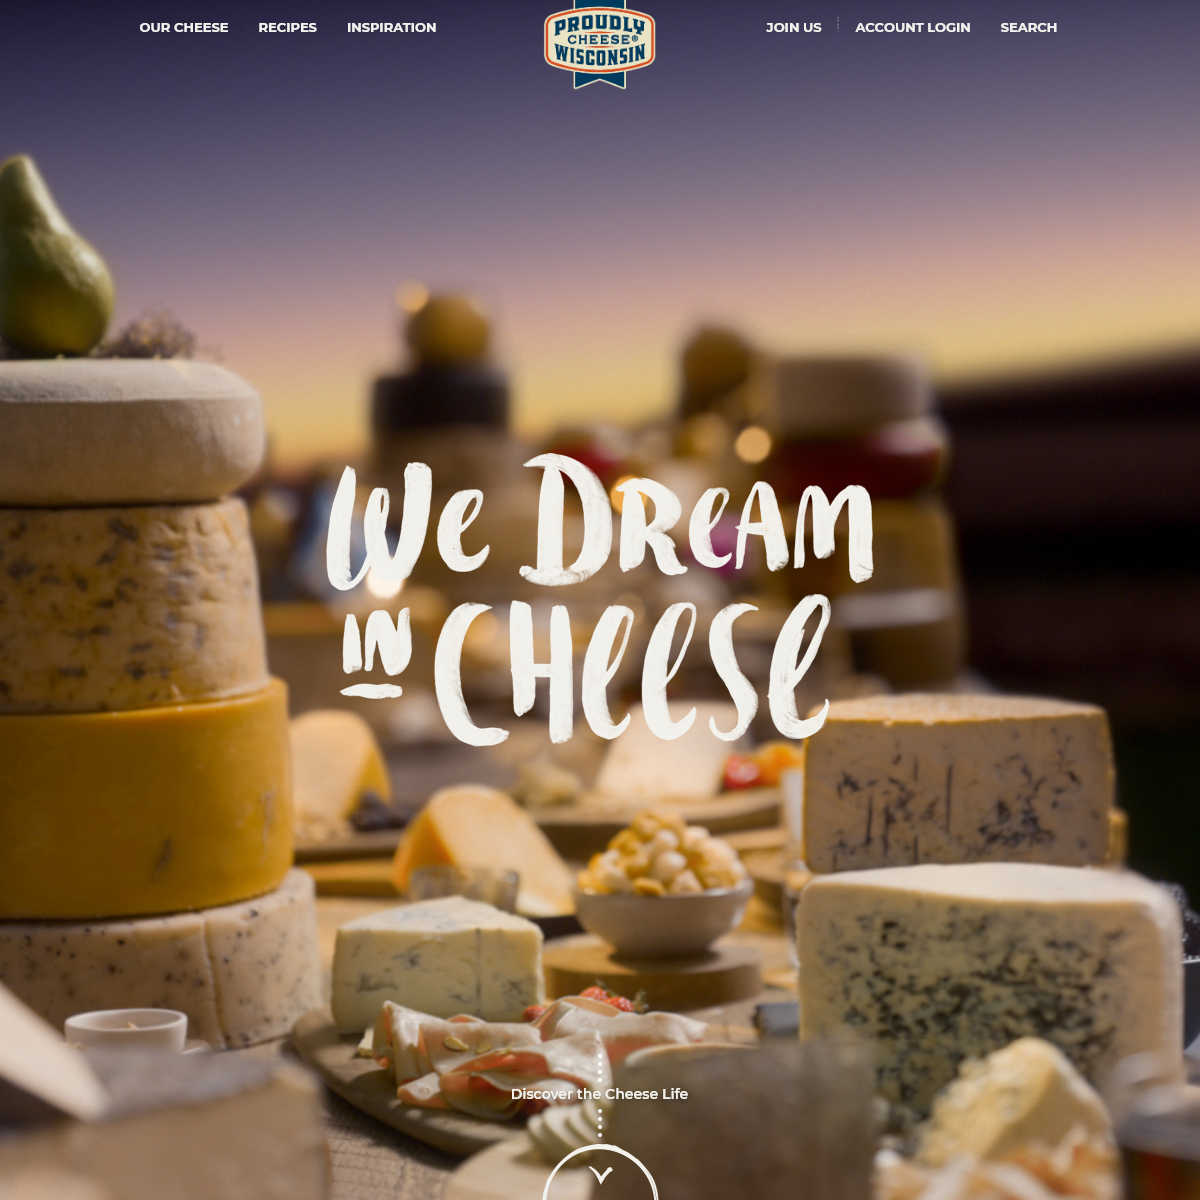 Wisconsin Cheese from The Cheese State ! We Dream in Cheese - Wisconsin Cheese